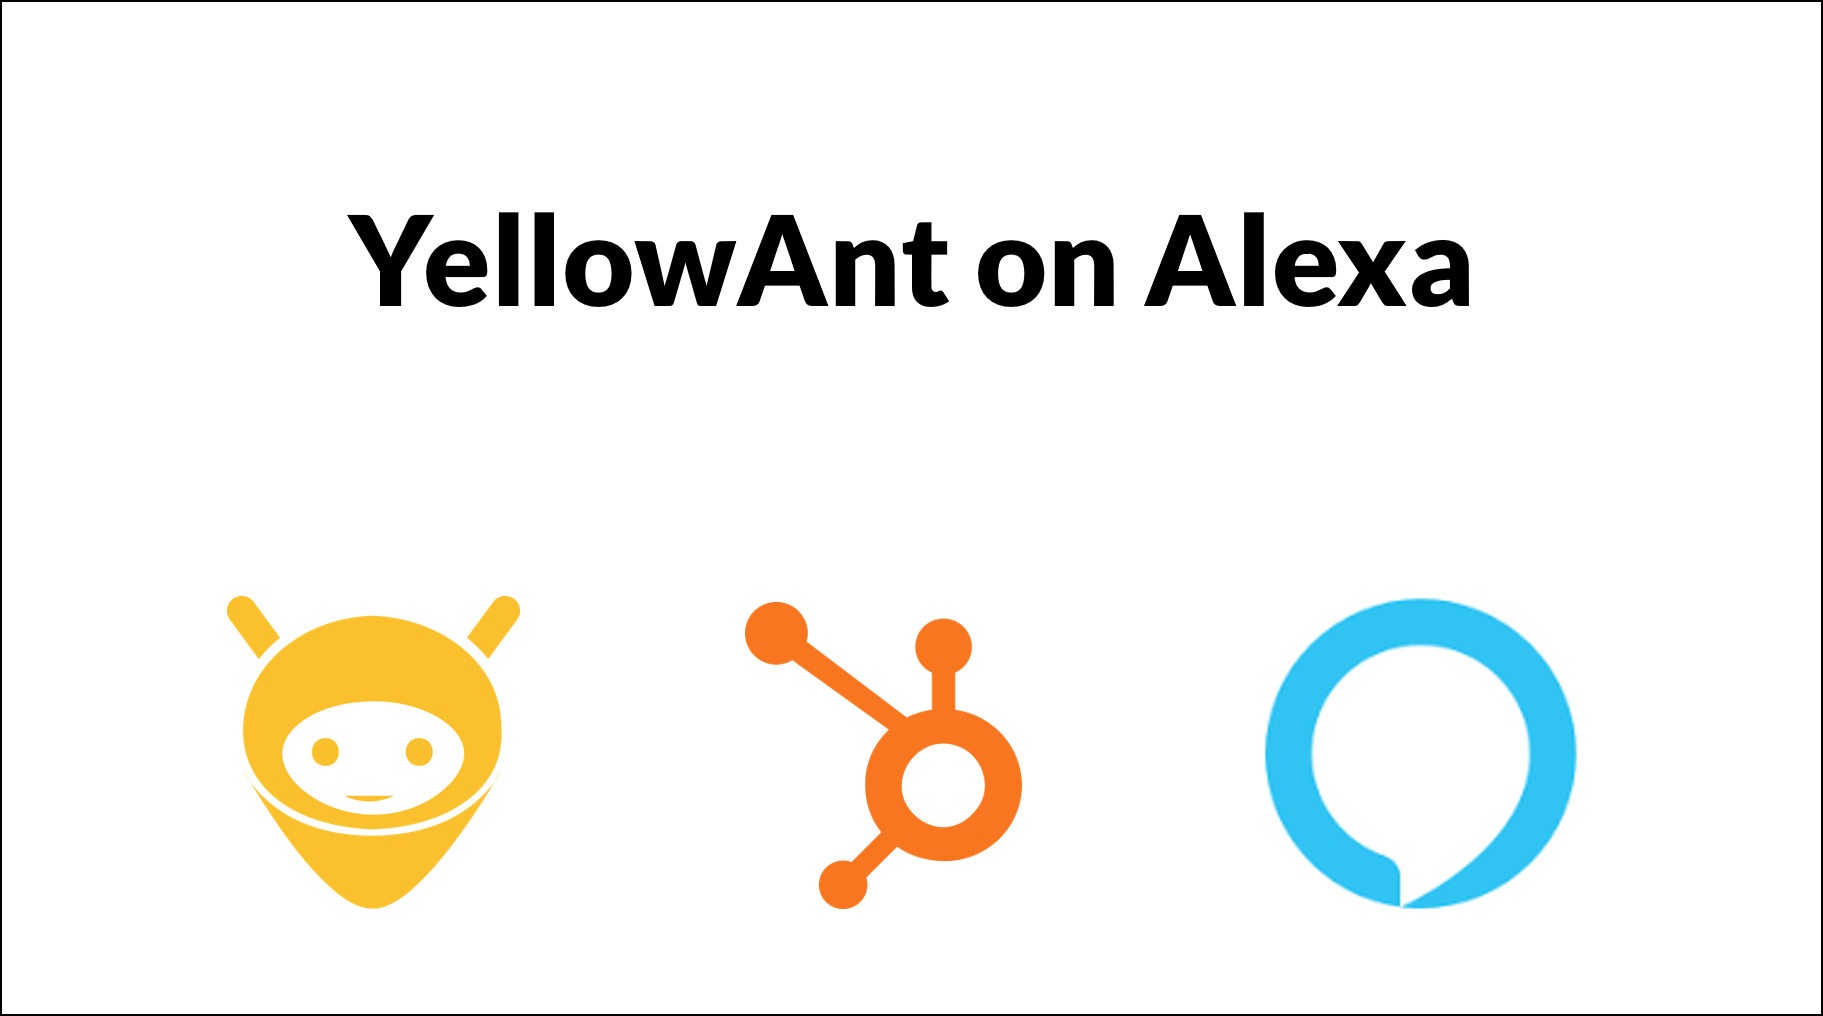 CRM Simplified with HubSpot and Alexa - YellowAnt